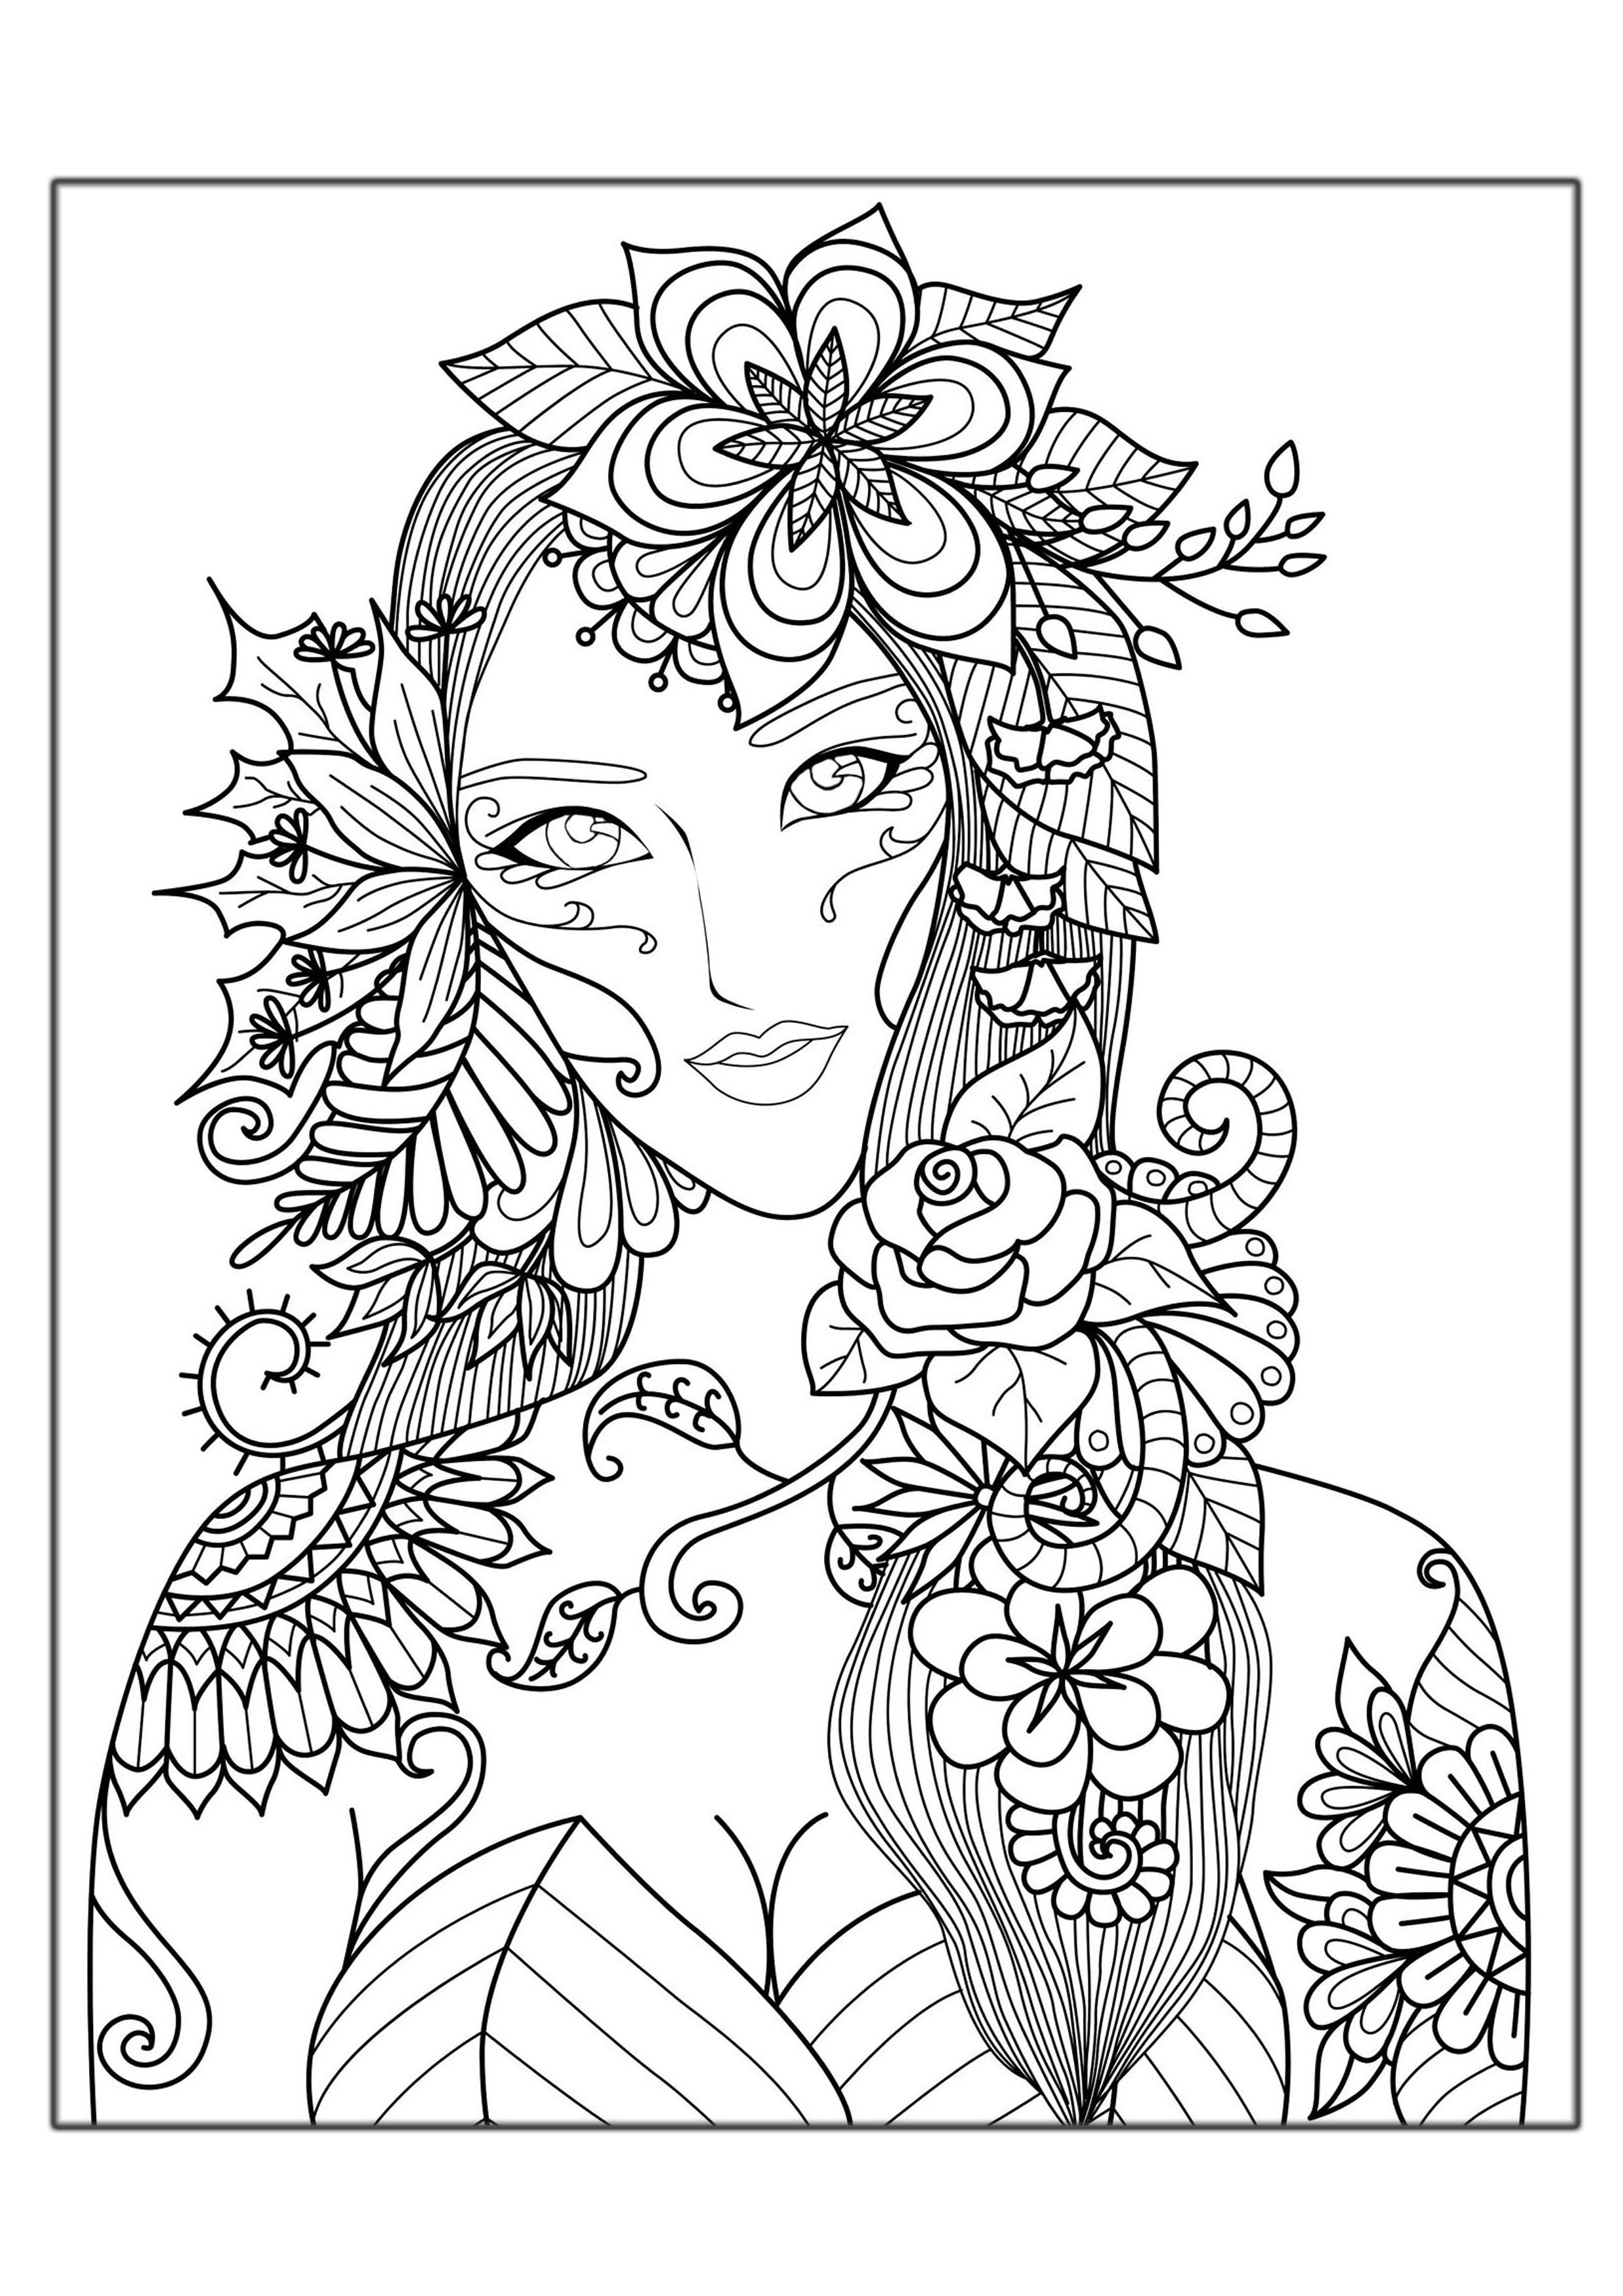 Coloring pages for adults for free - Woman Flowers Zen And Anti Stress Coloring Pages For Adults Justcolor